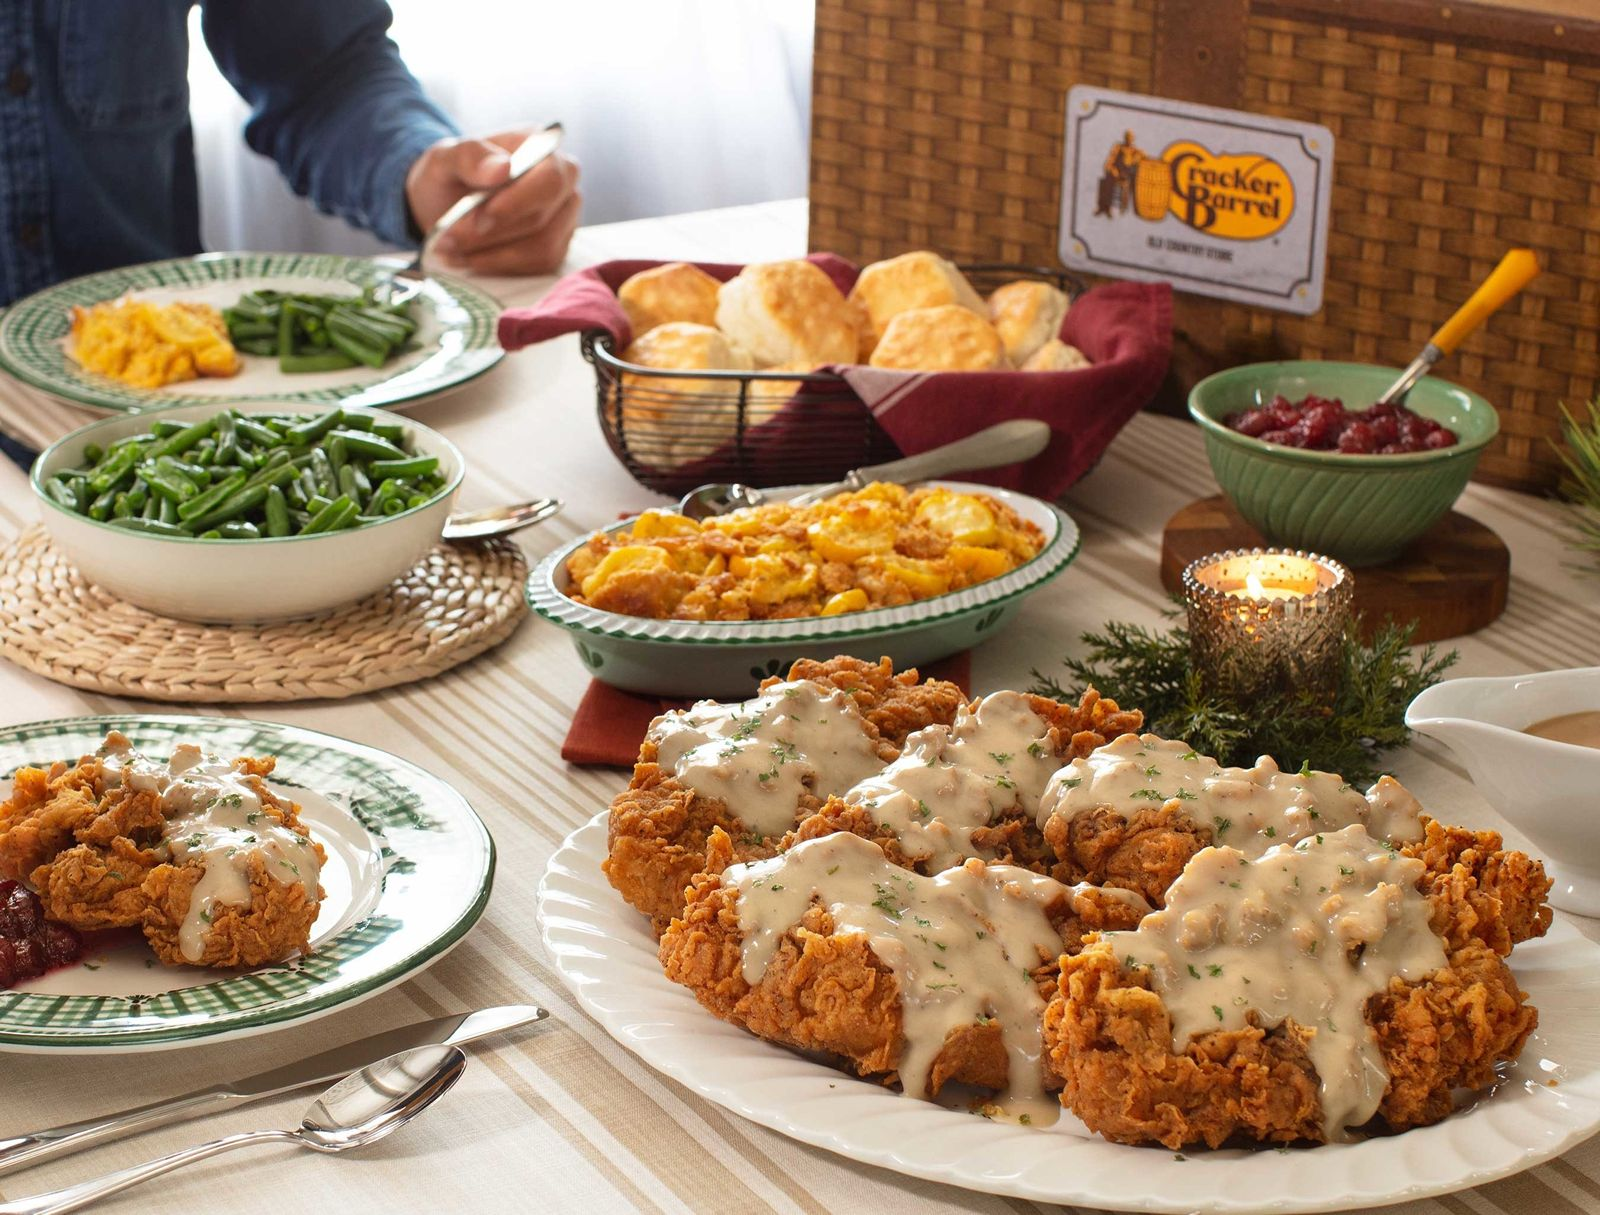 Cracker Barrel Old Country Store Kicks Off Military Family Appreciation Month by Honoring Those Who Have Served